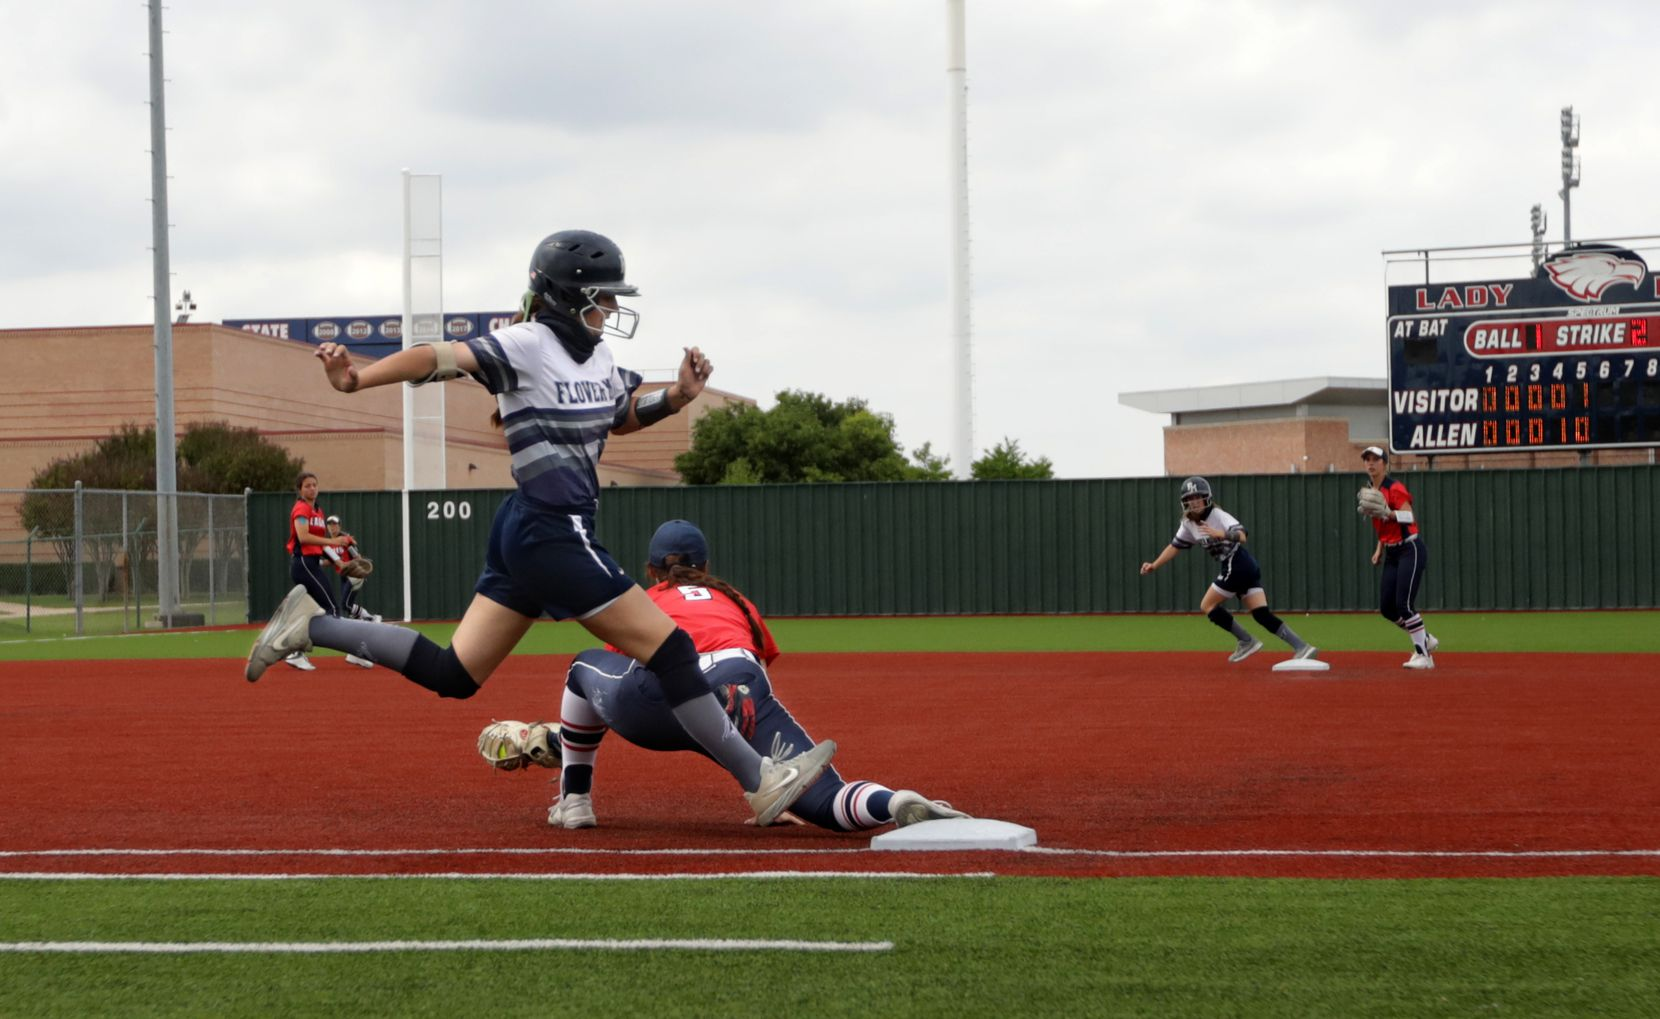 Allen High School player #5, Brooklyn Purtell, takes out Flower Mound High School player #23, Courtney Cogbill, at first base during a softball game at Allen High School in Allen, TX, on May 15, 2021. (Jason Janik/Special Contributor)